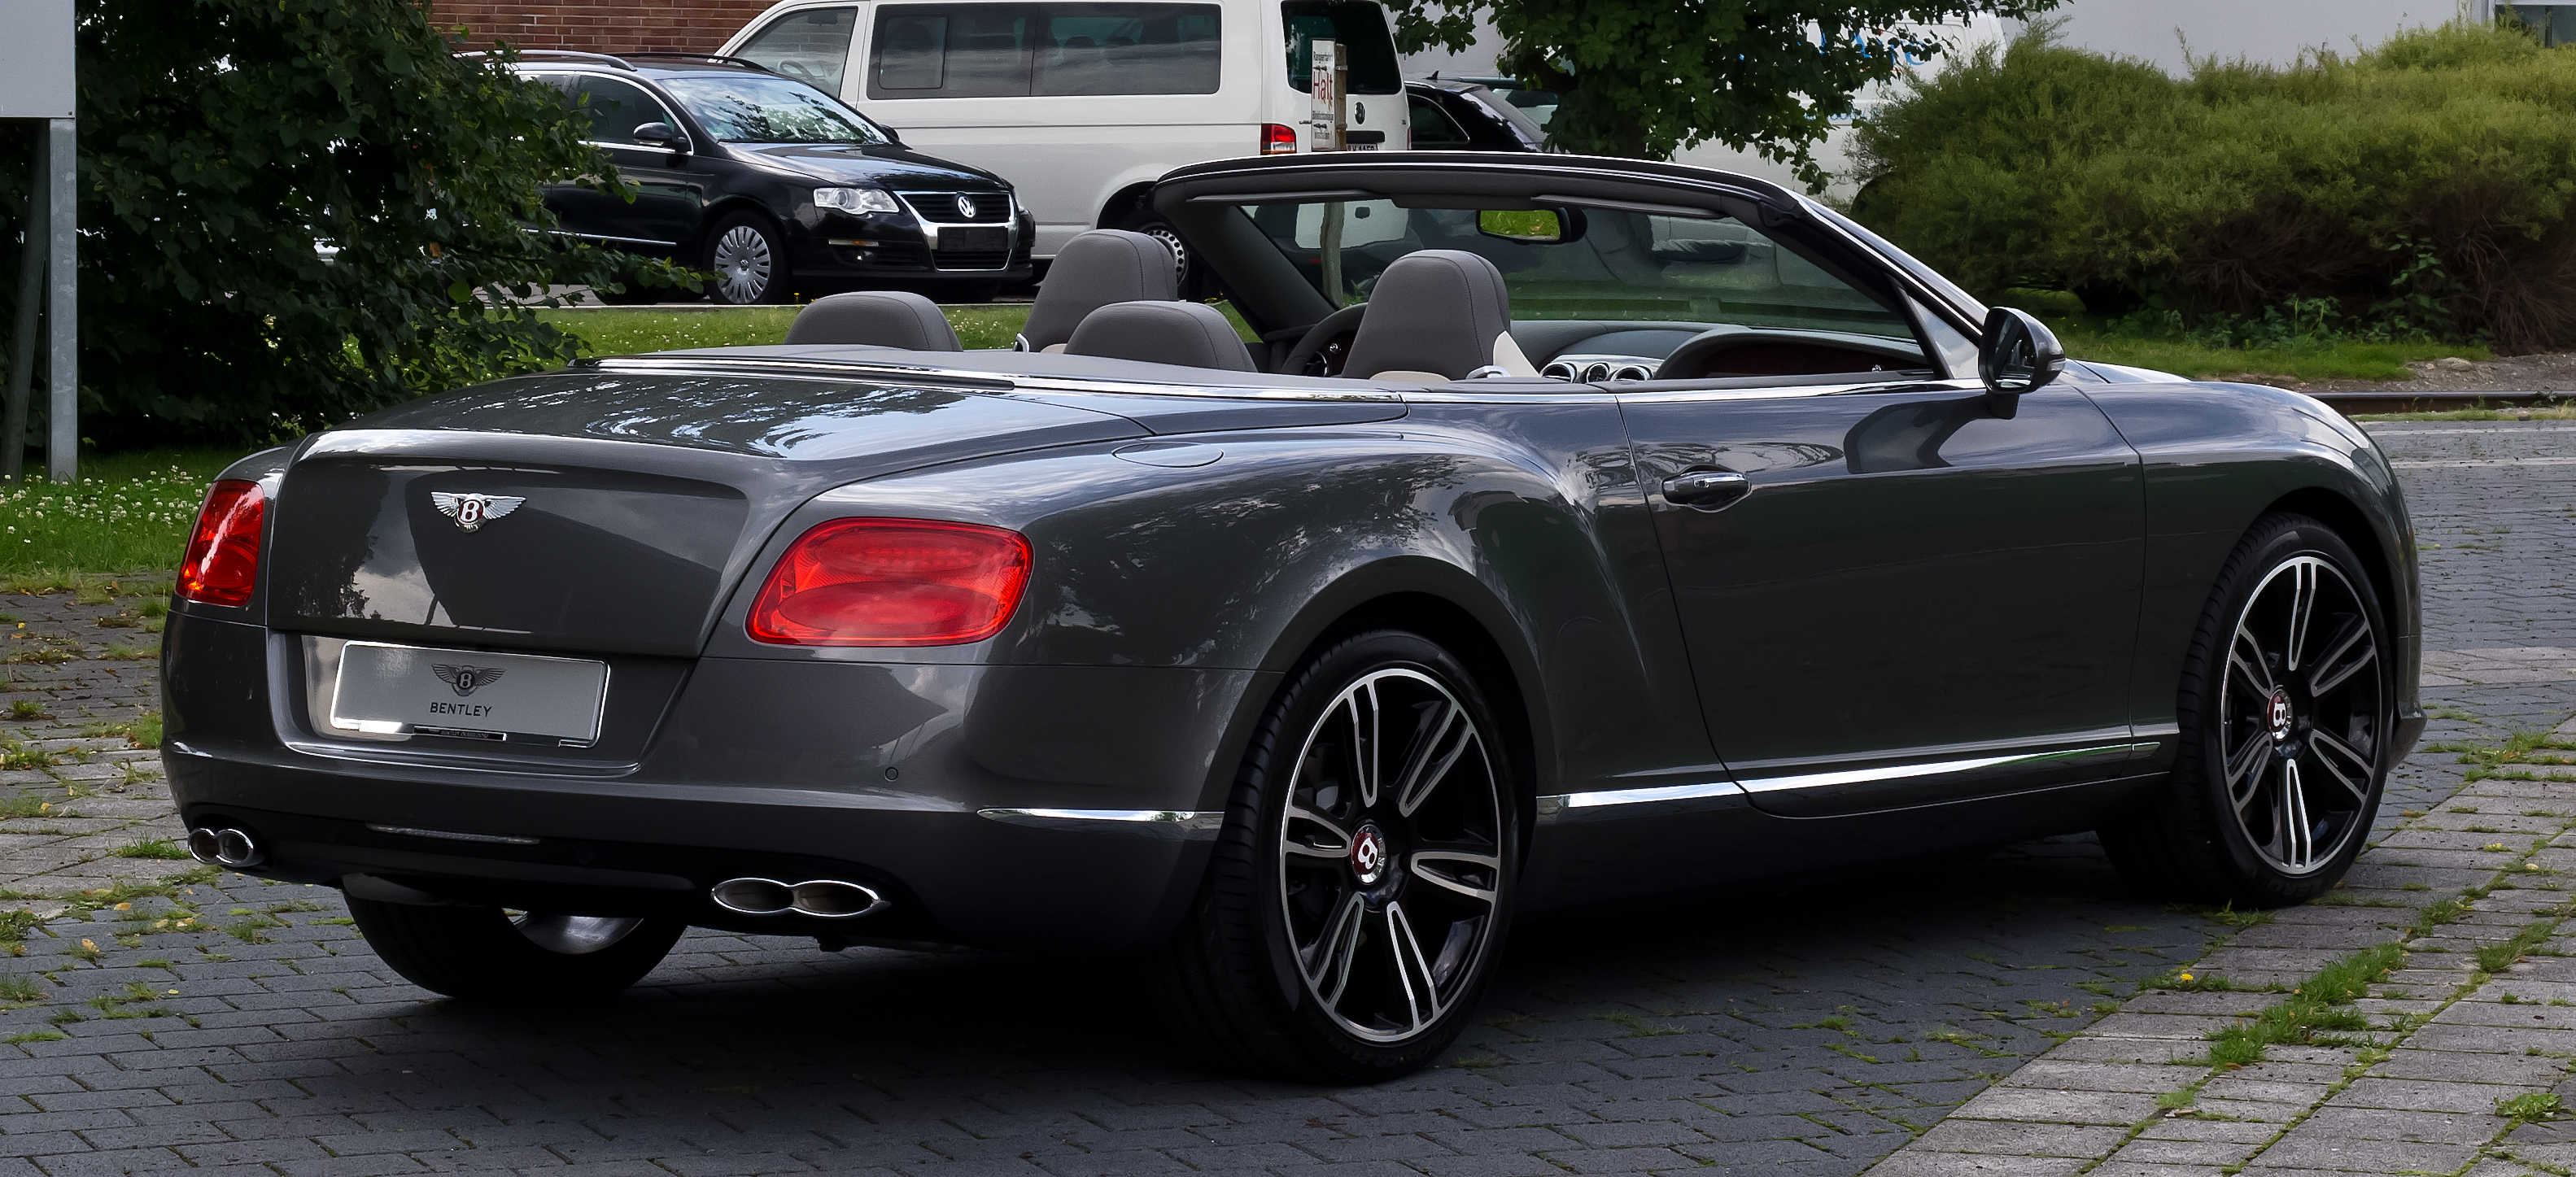 Bentley Viewer V8 Xm Edition Free Software And Shareware